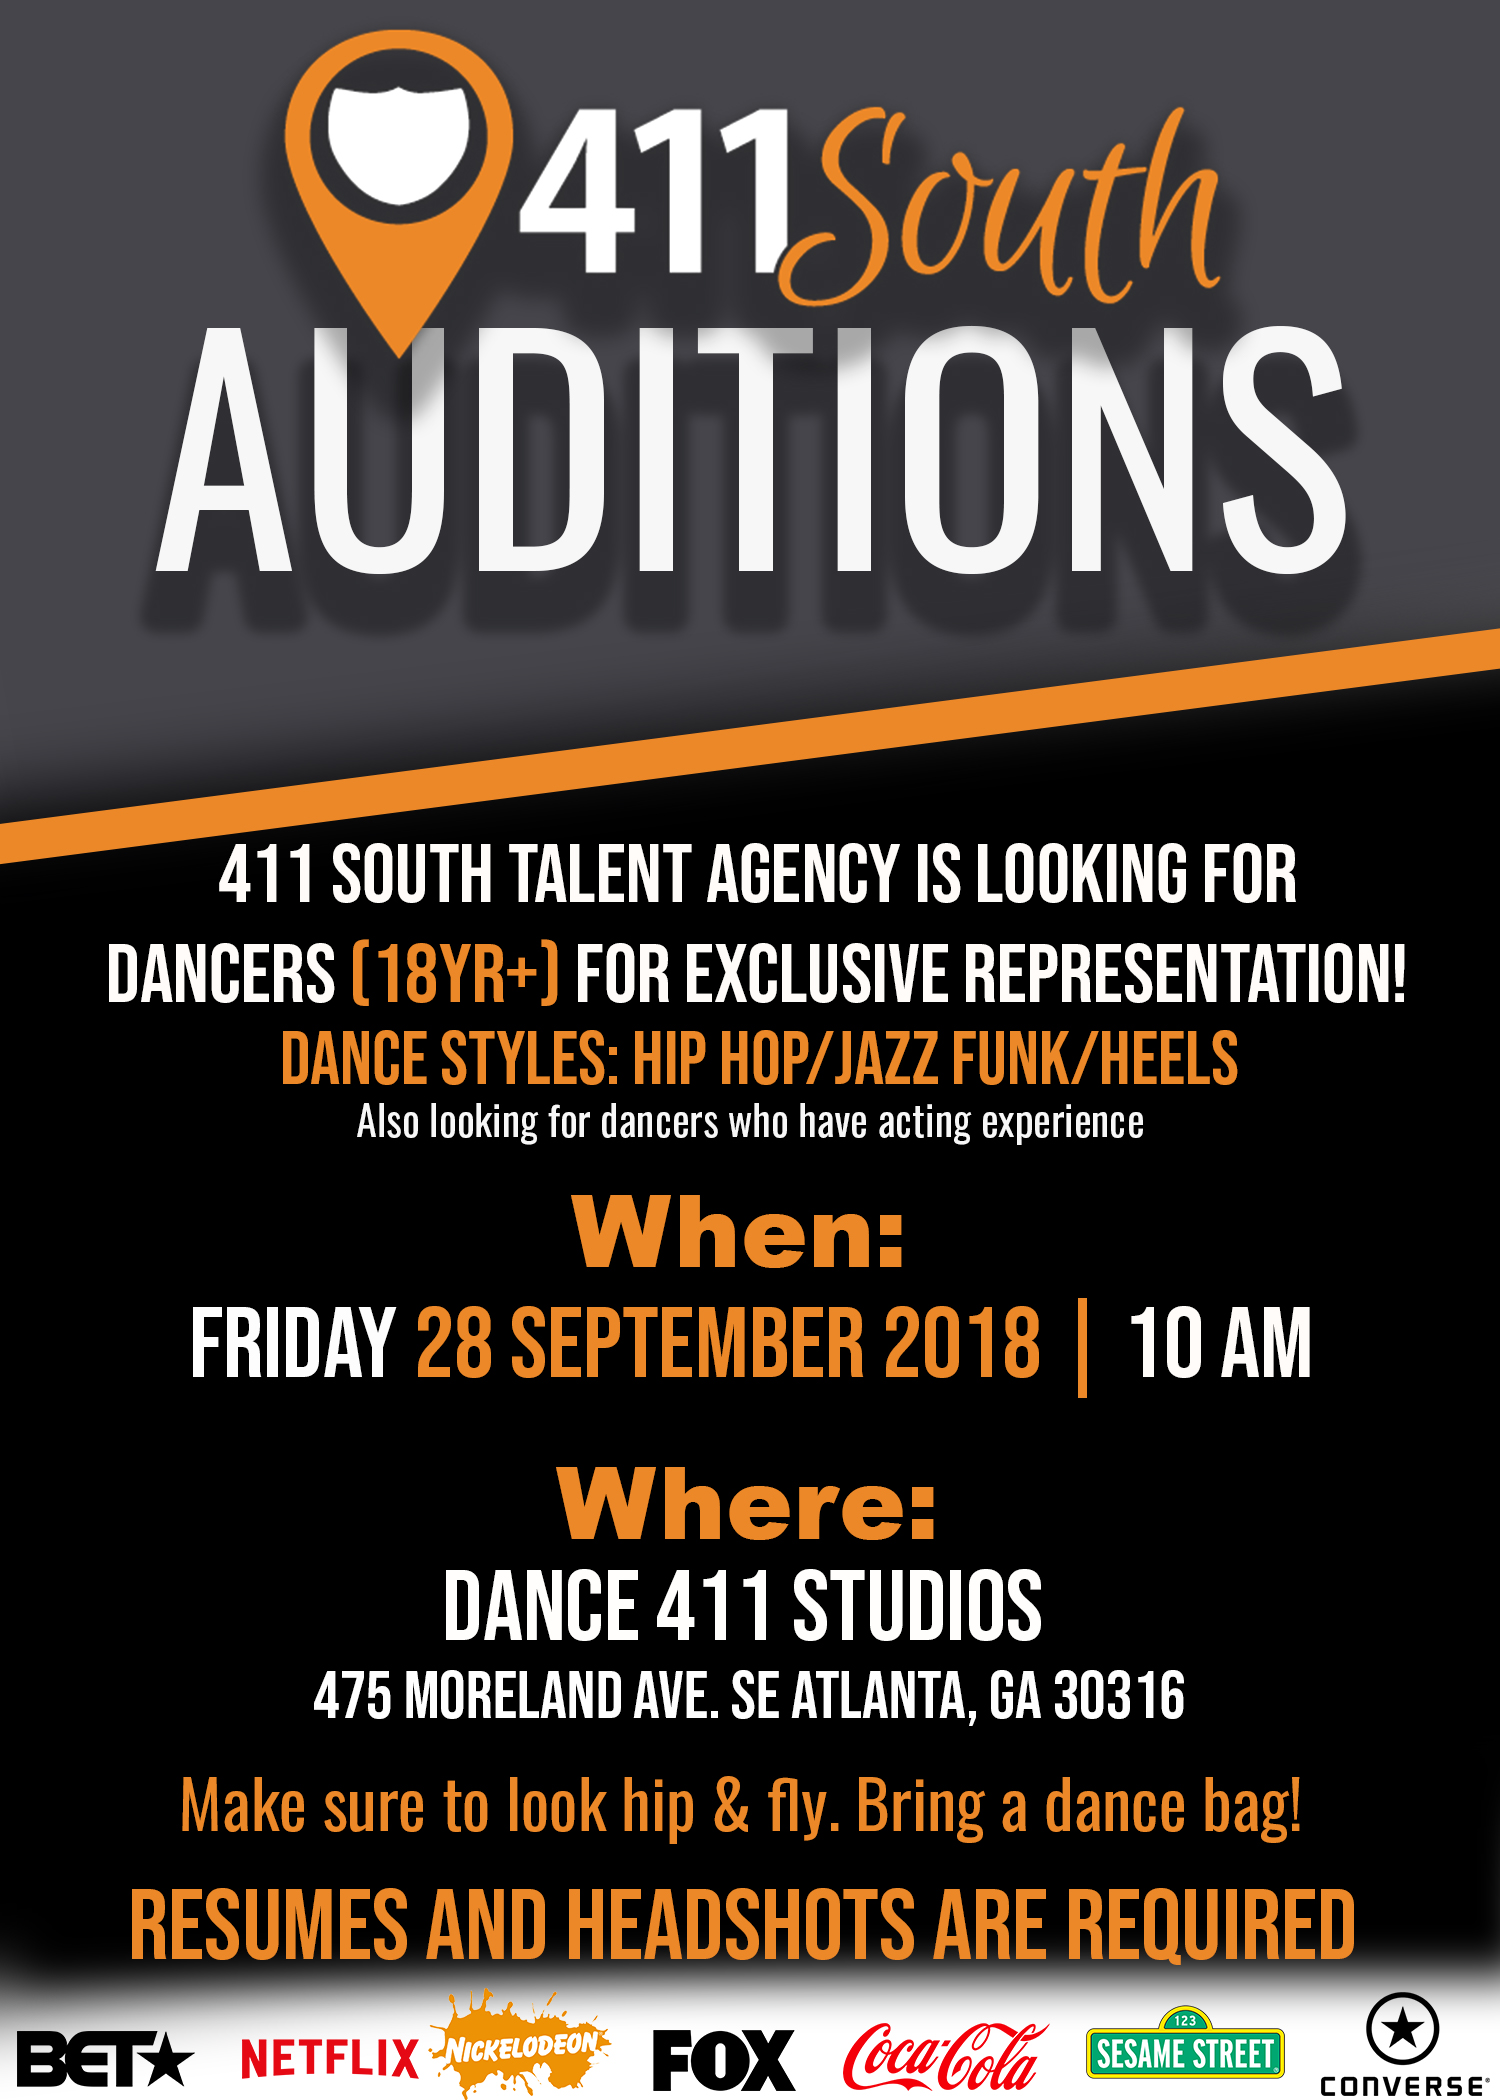 411 SOUTH TALENT AGENCY AUDITIONS IN ATLANTA - Atlanta Dance